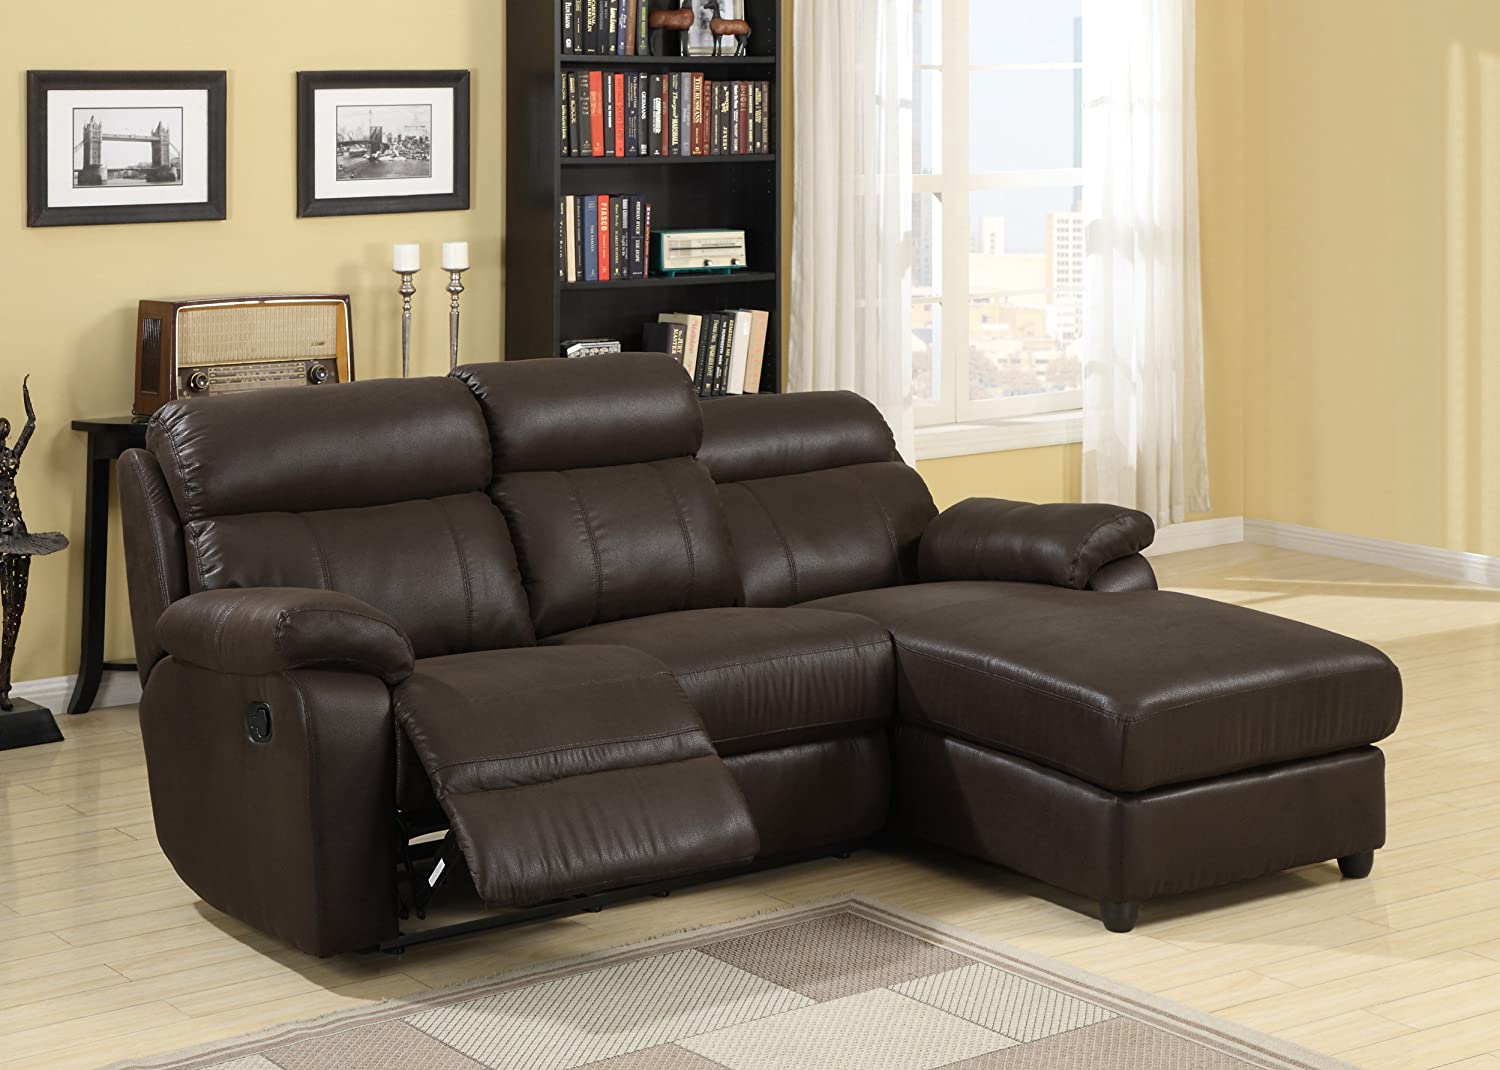 Amazon.com: Homelegance Gaines 9609 2-Piece Sectional Sofa ...